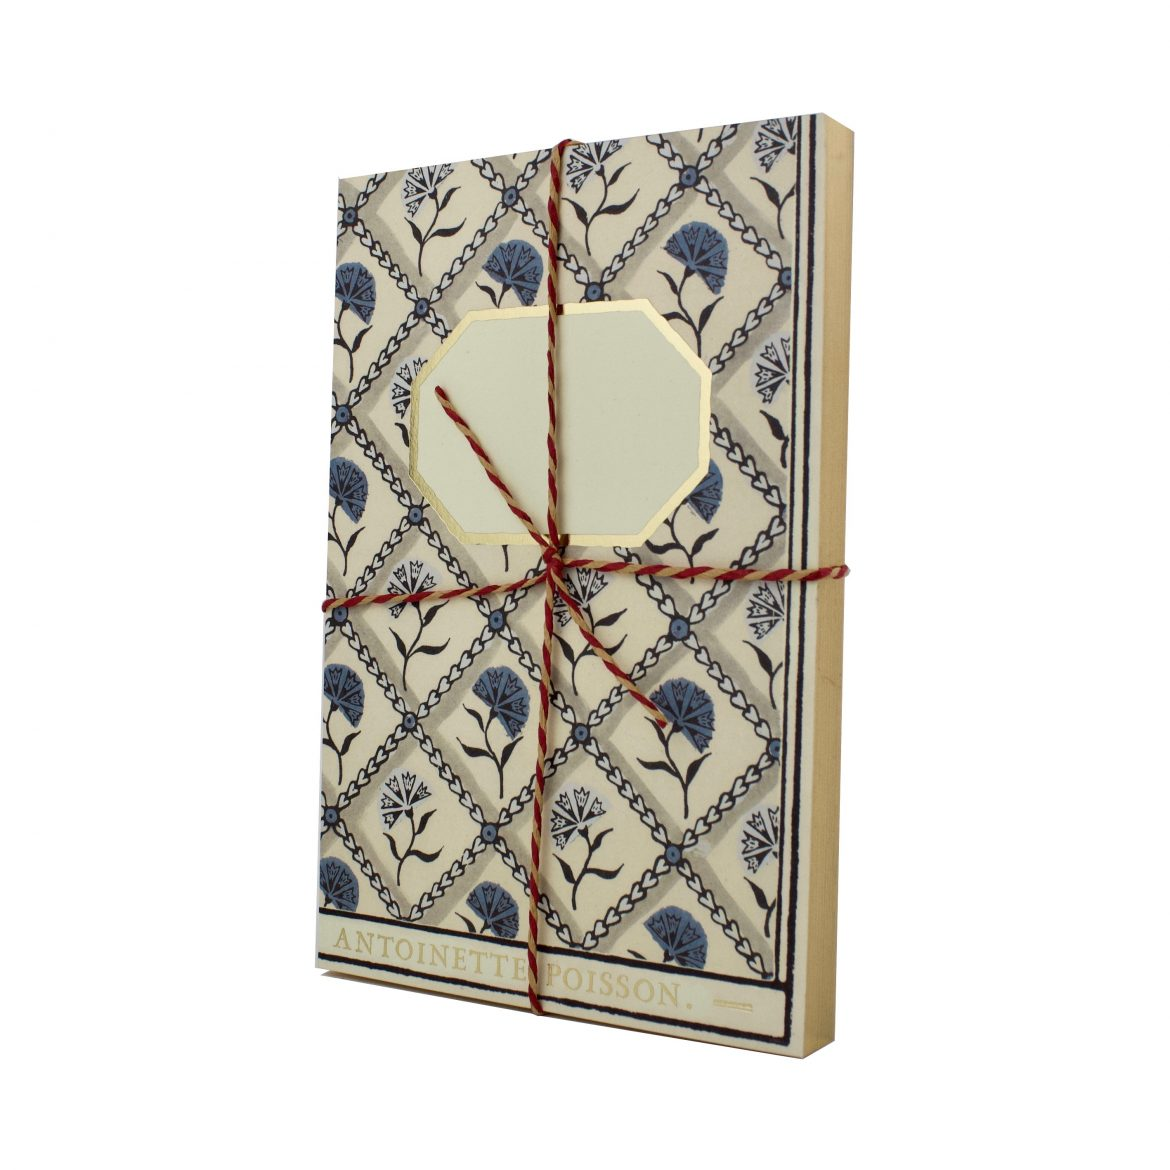 Antoinette Poisson Creation Notebook